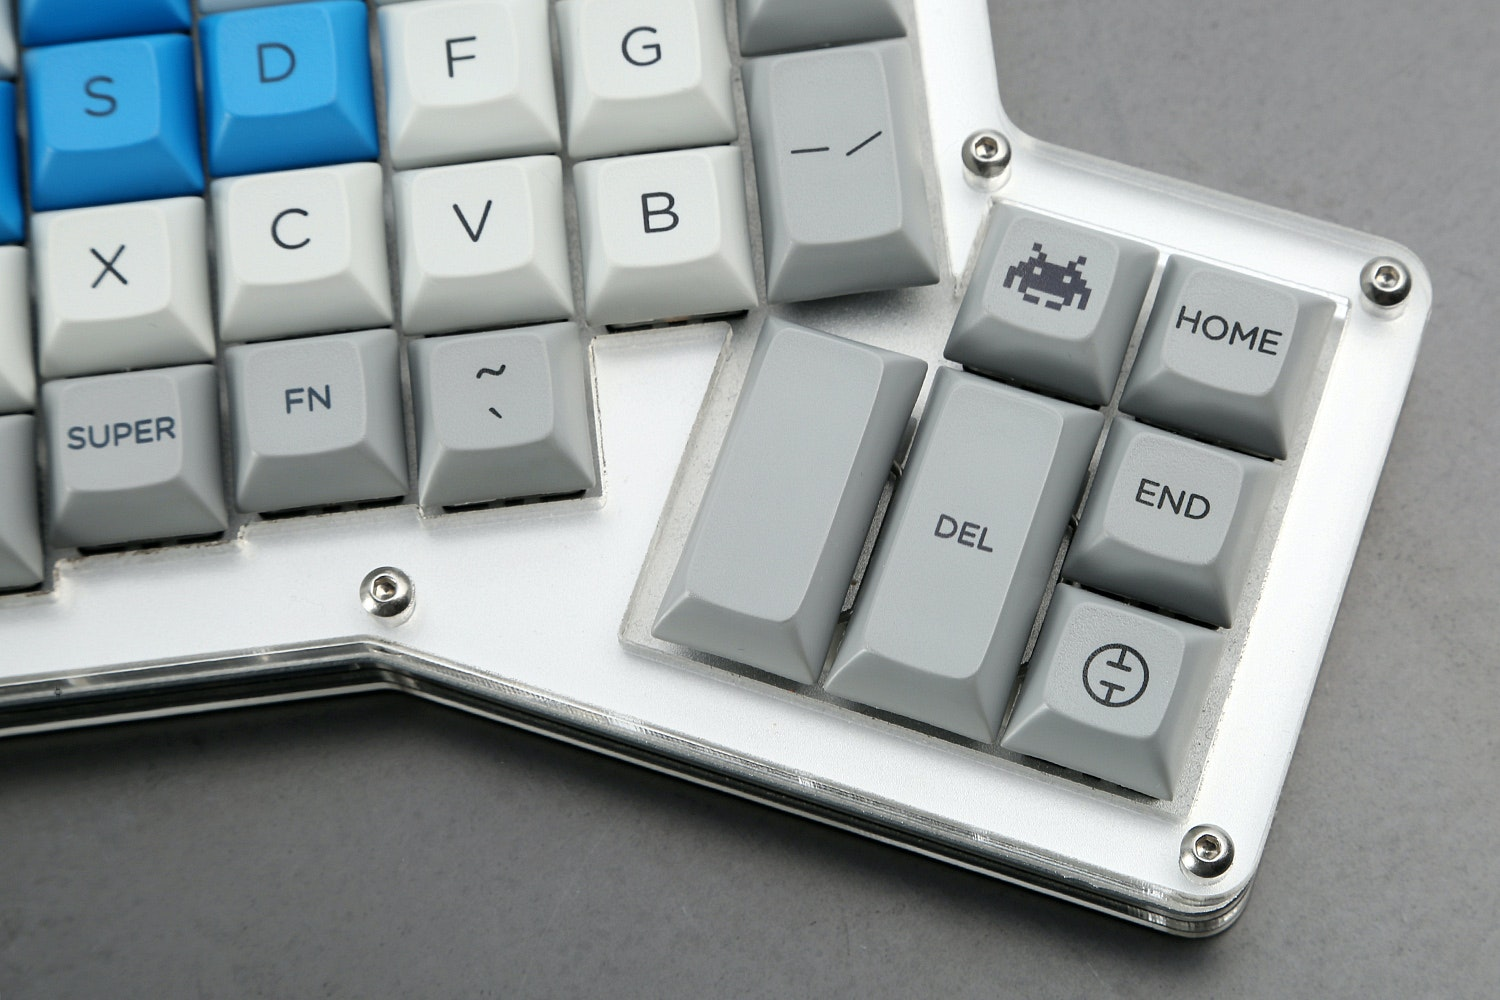 Infinity ErgoDox Ergonomic Keyboard Kit